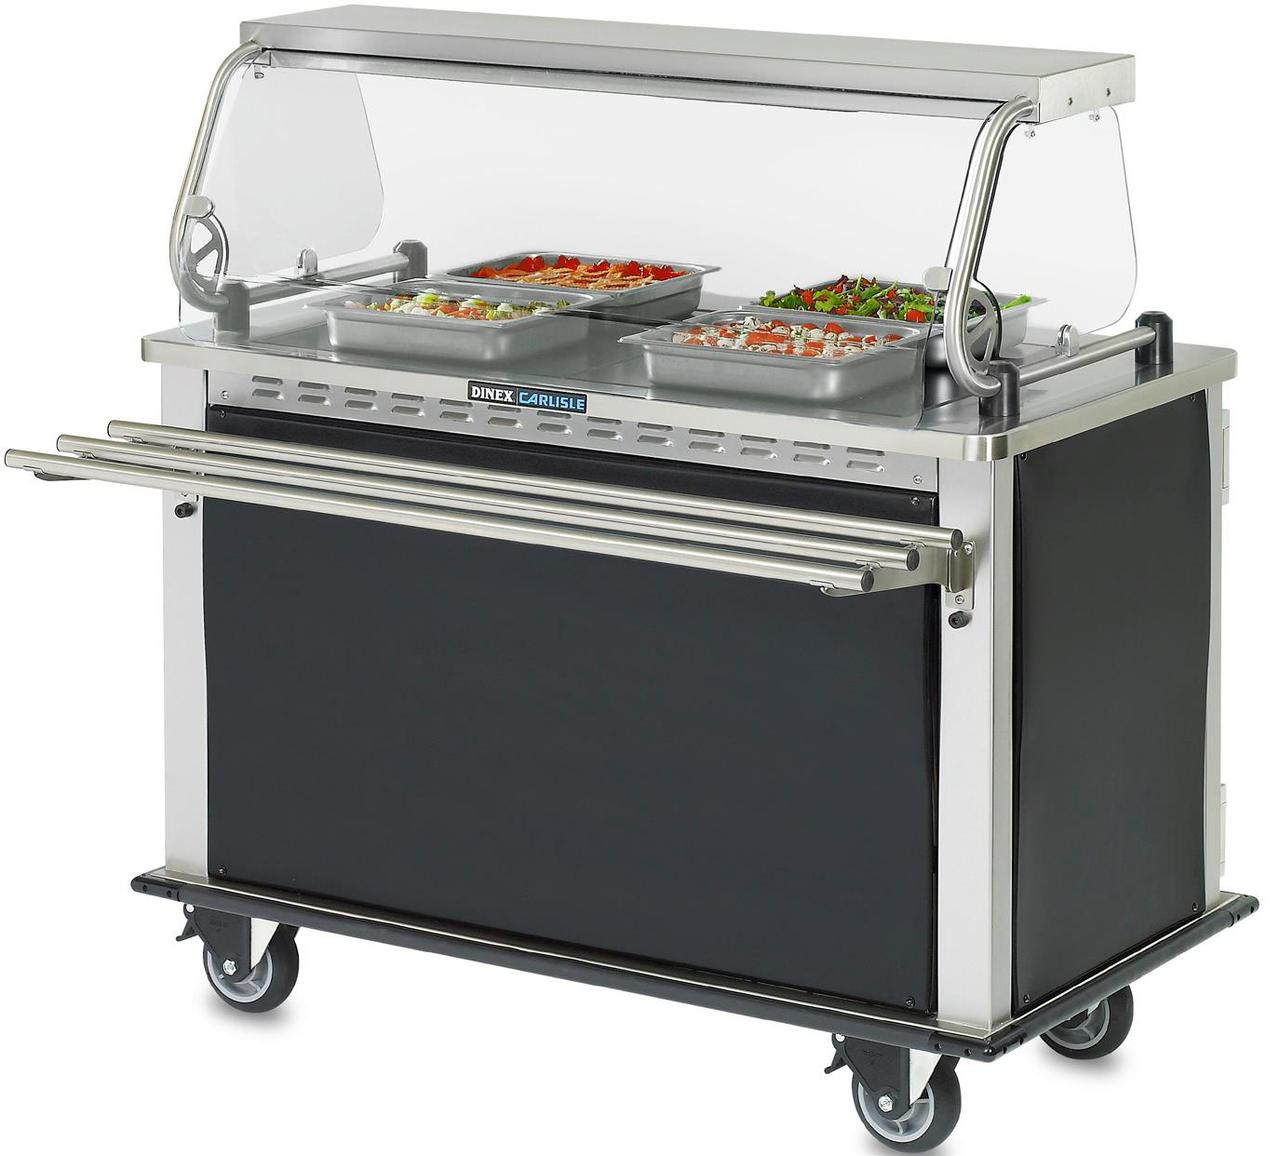 Dinner Delivery Cart Heated Refrigerated Mealtime Express